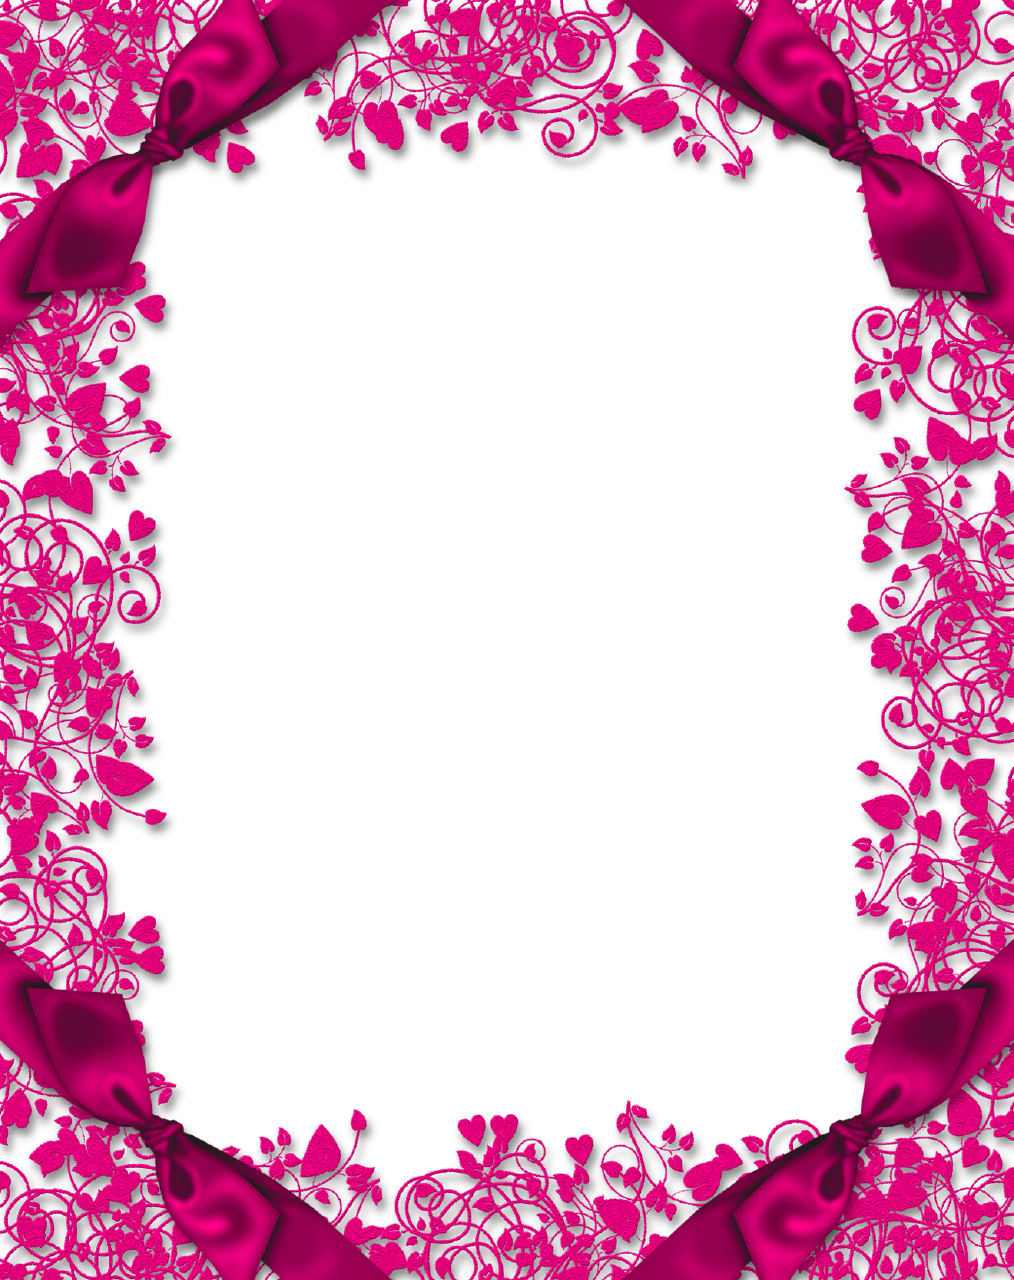 Pink floral border png. High quality image arts